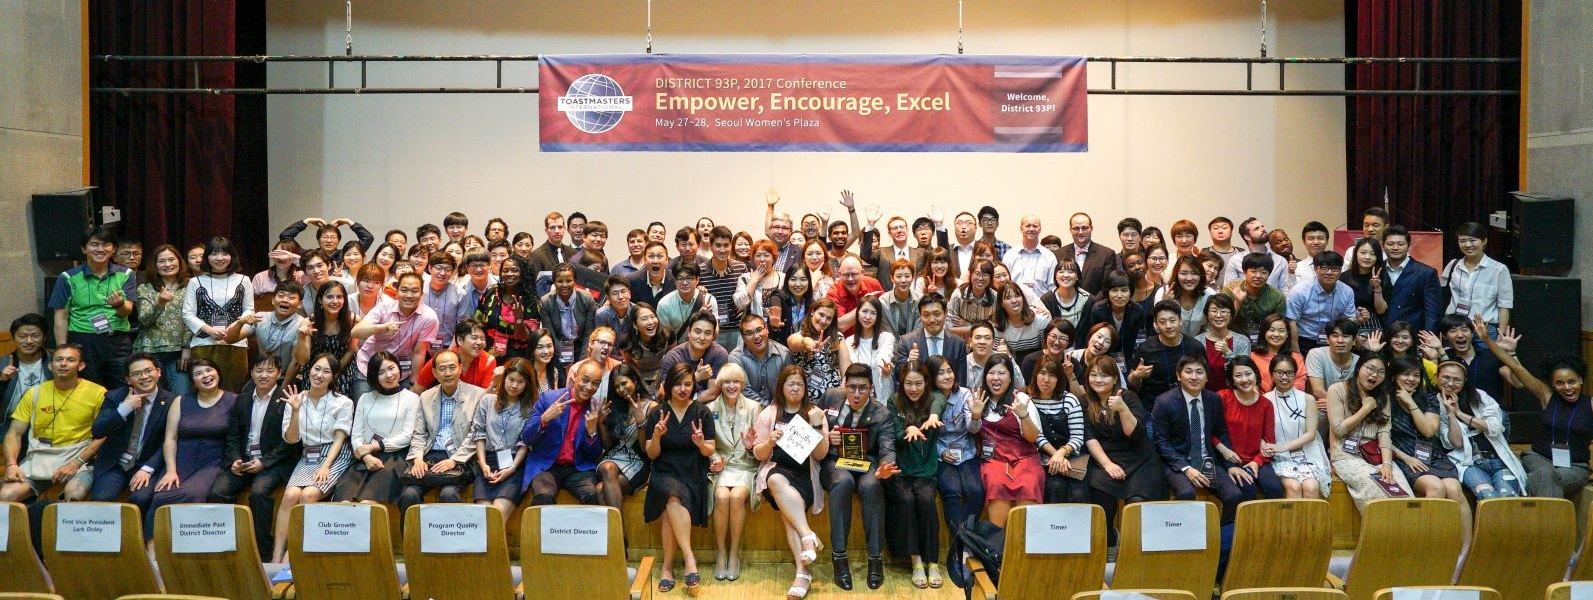 D93p, Toastmasters in Korea